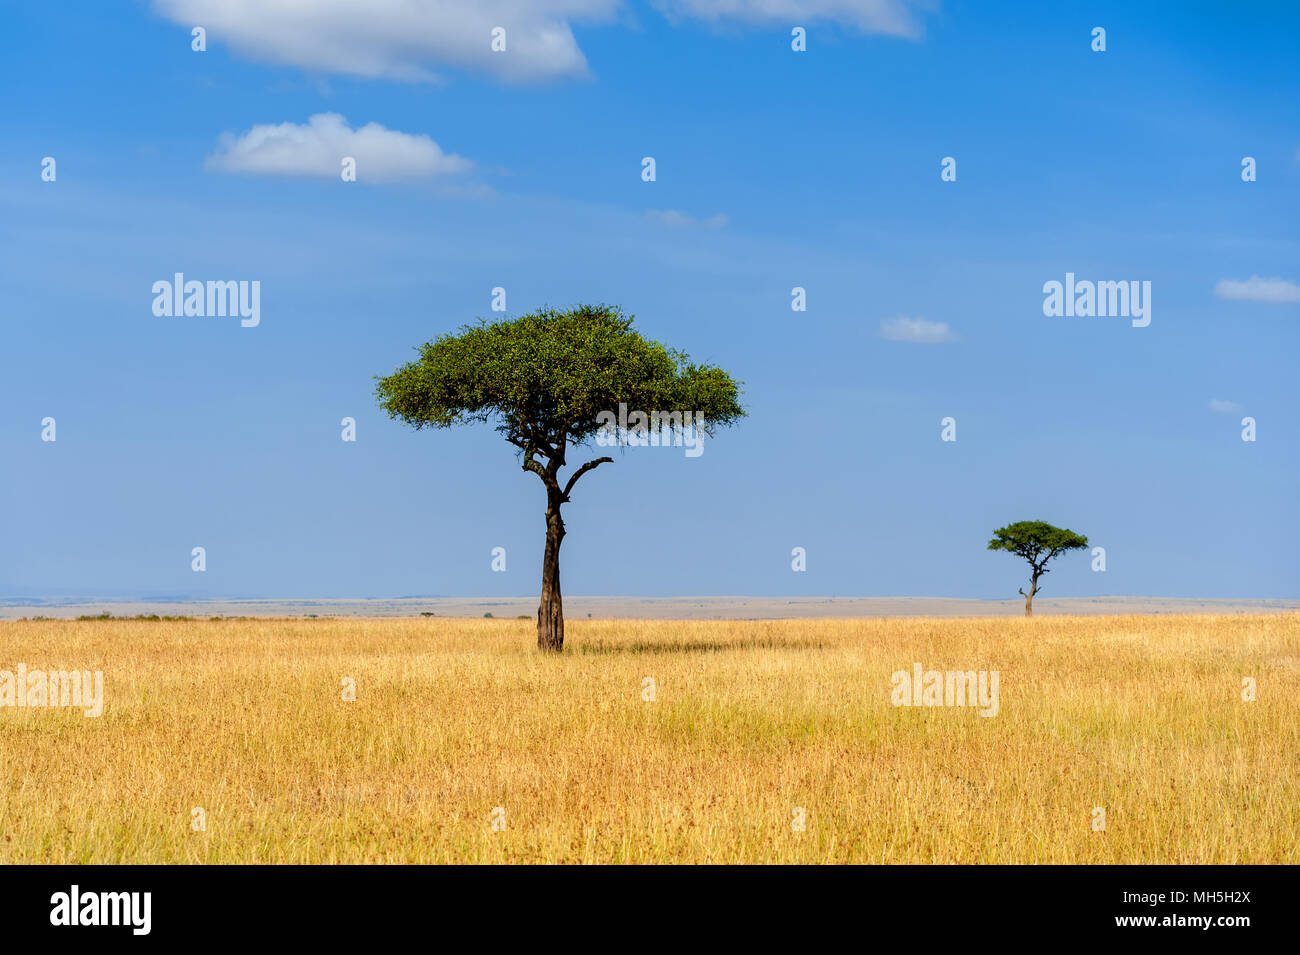 Beautiful landscape with nobody tree in Africa - Stock Image